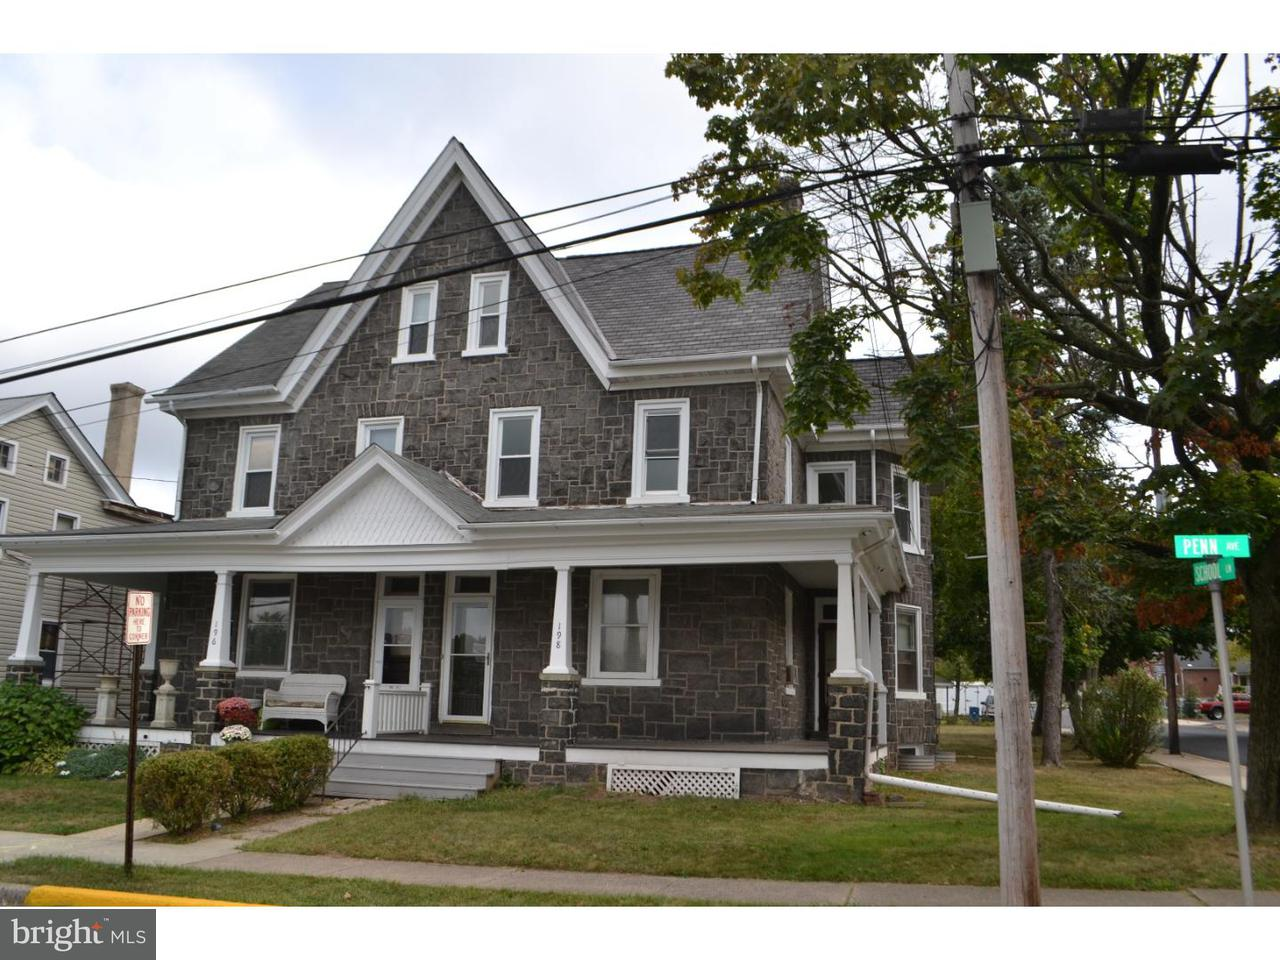 Townhouse for Rent at 198 PENN AVE #2ND FL Telford, Pennsylvania 18969 United States